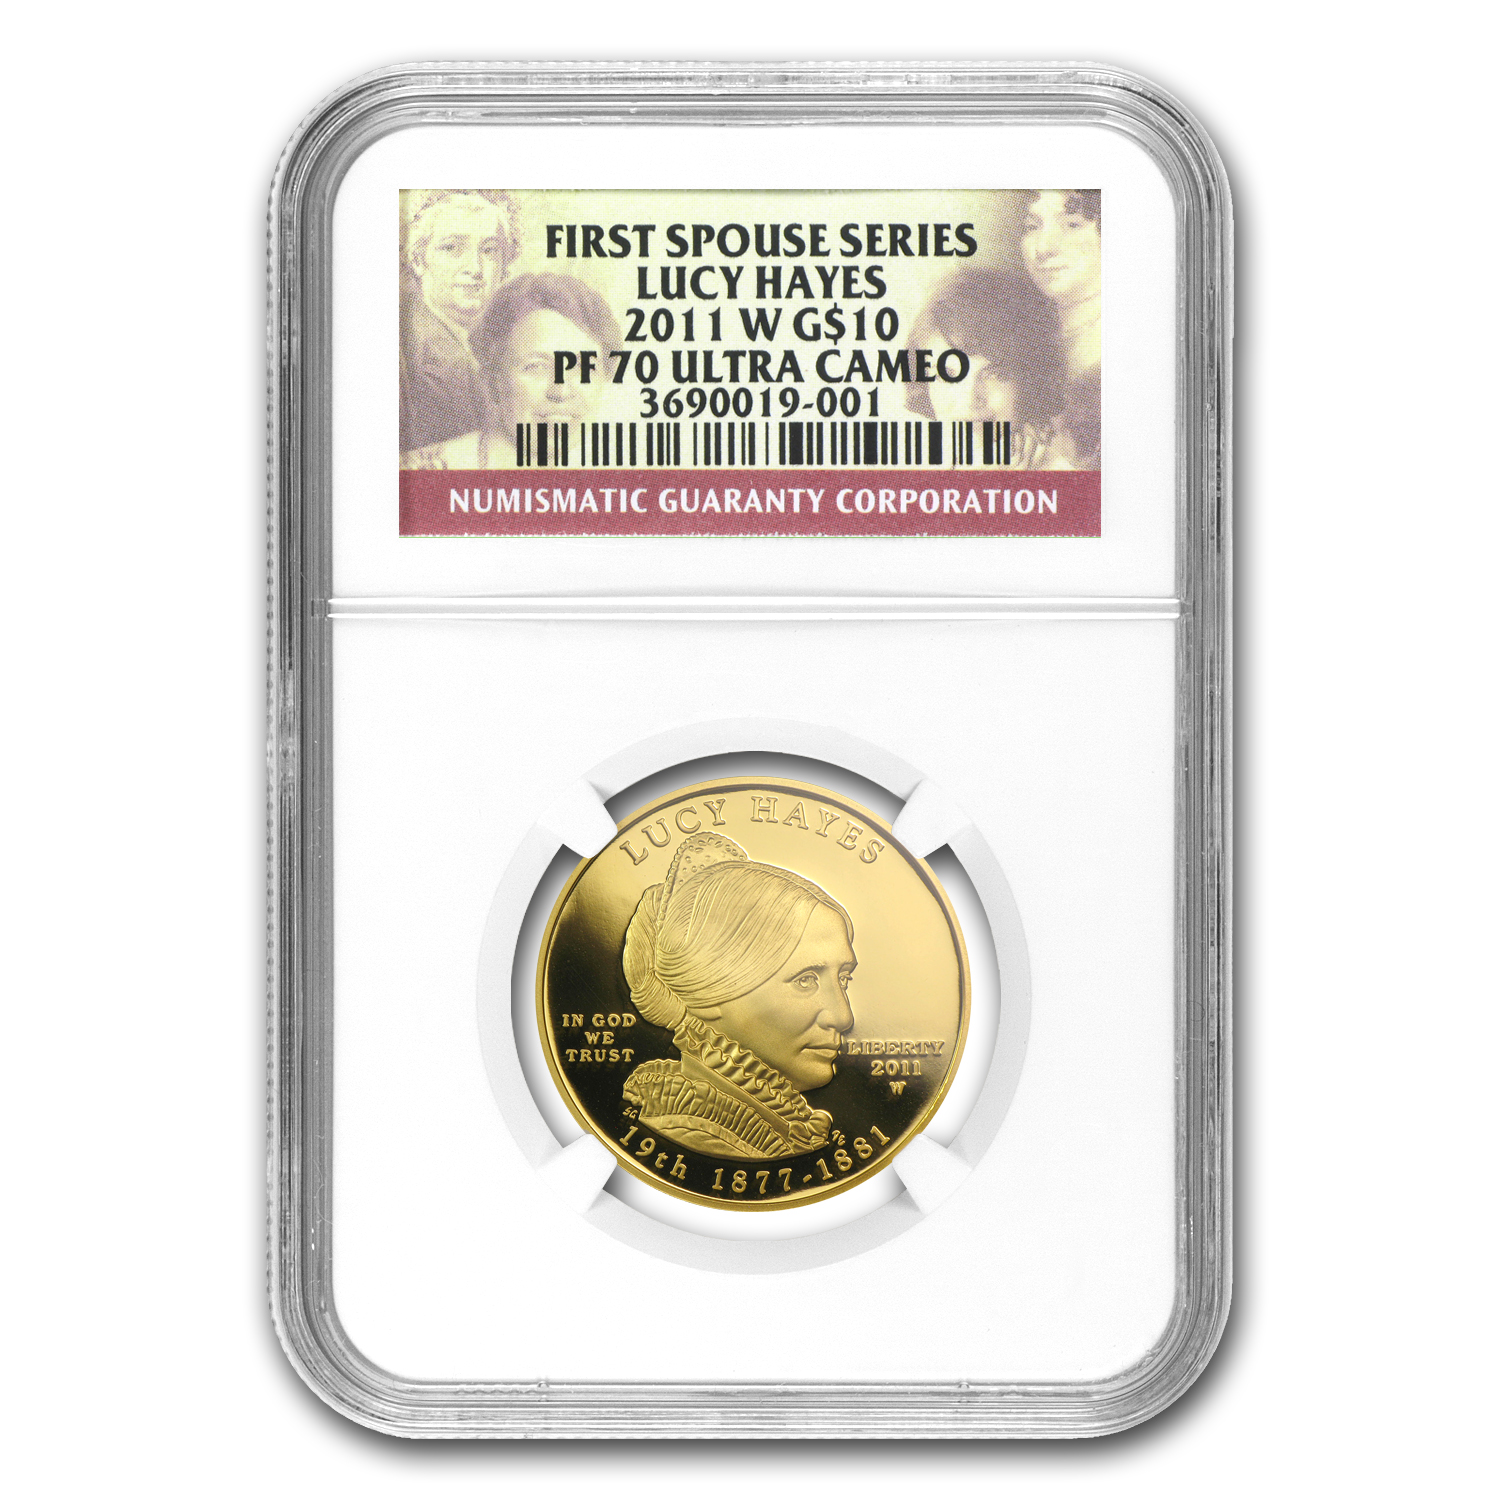 2011-W 1/2 oz Proof Gold Lucy Hayes PF-70 NGC